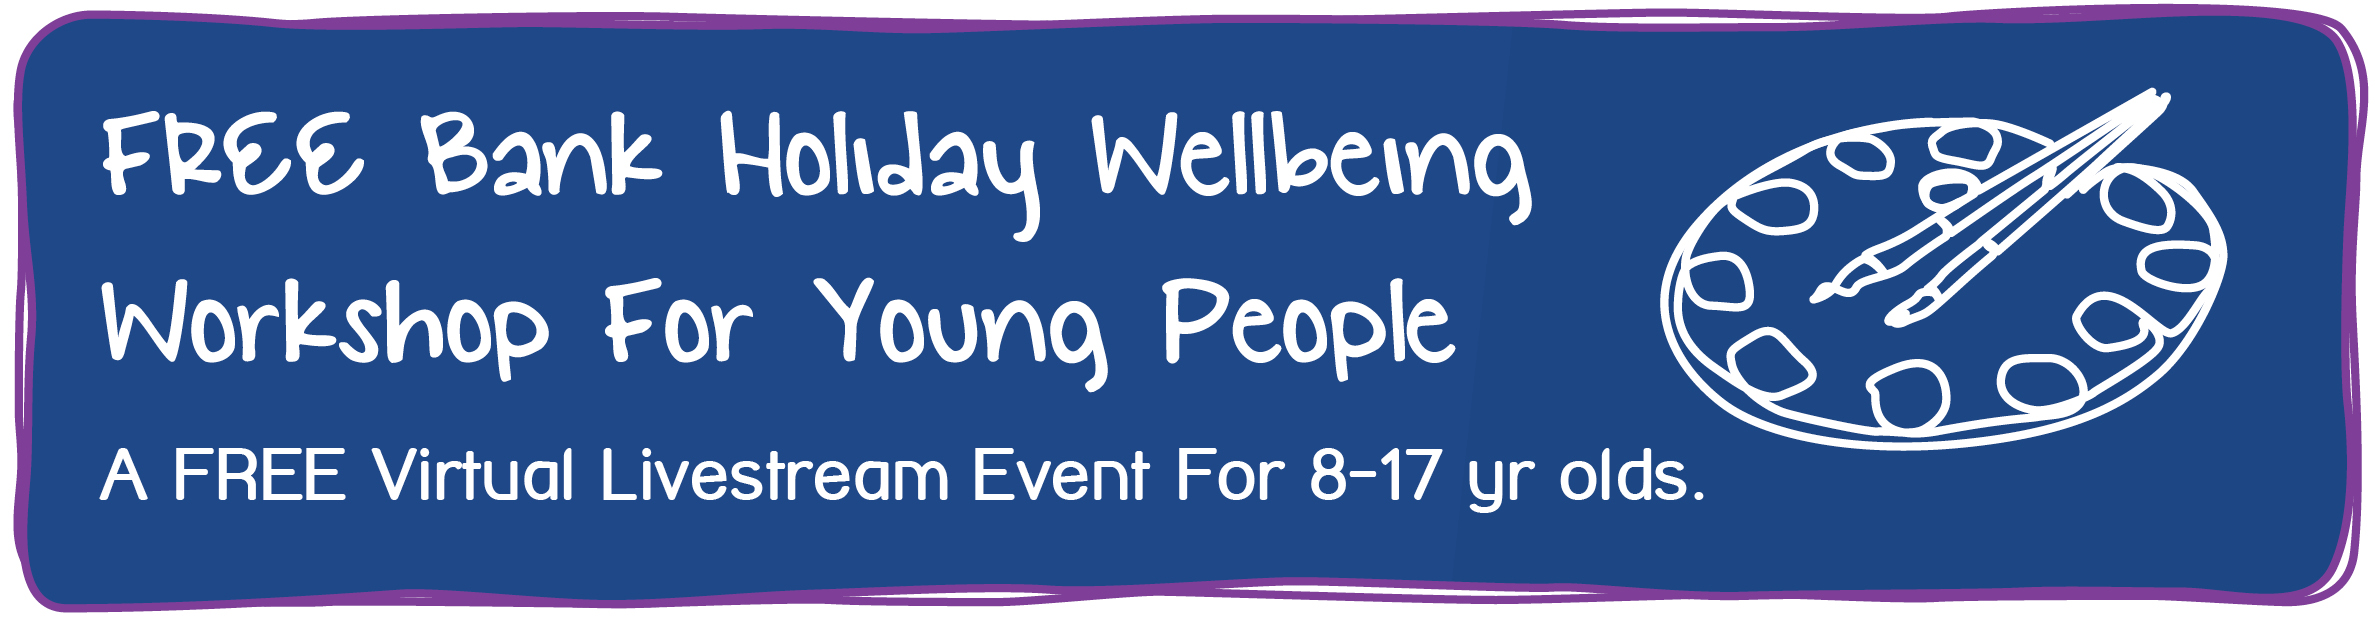 FREE Bank Holiday Wellbeing Workshop Workshop For Young People. A FREE Virtual Livestream Event For 8-17 yr olds.